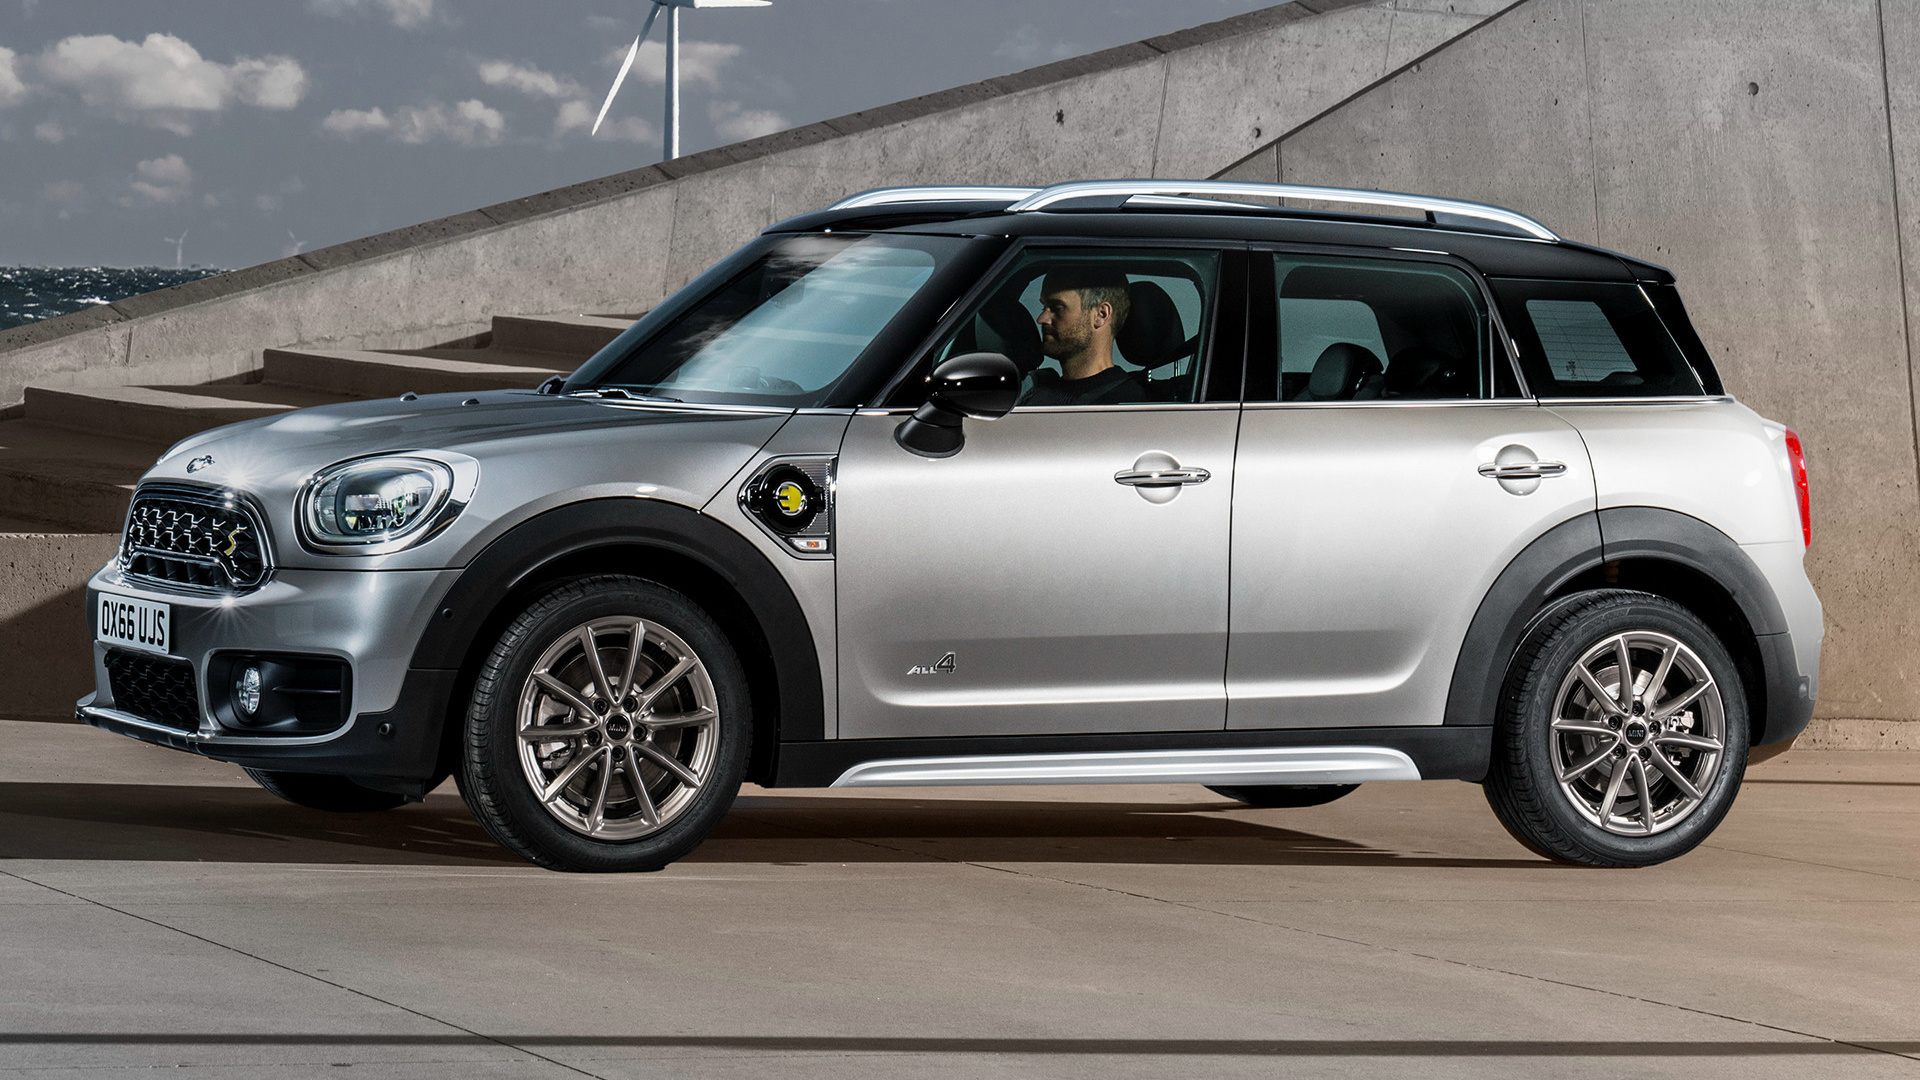 mini cooper s e countryman 2017 wallpapers and hd images car pixel. Black Bedroom Furniture Sets. Home Design Ideas